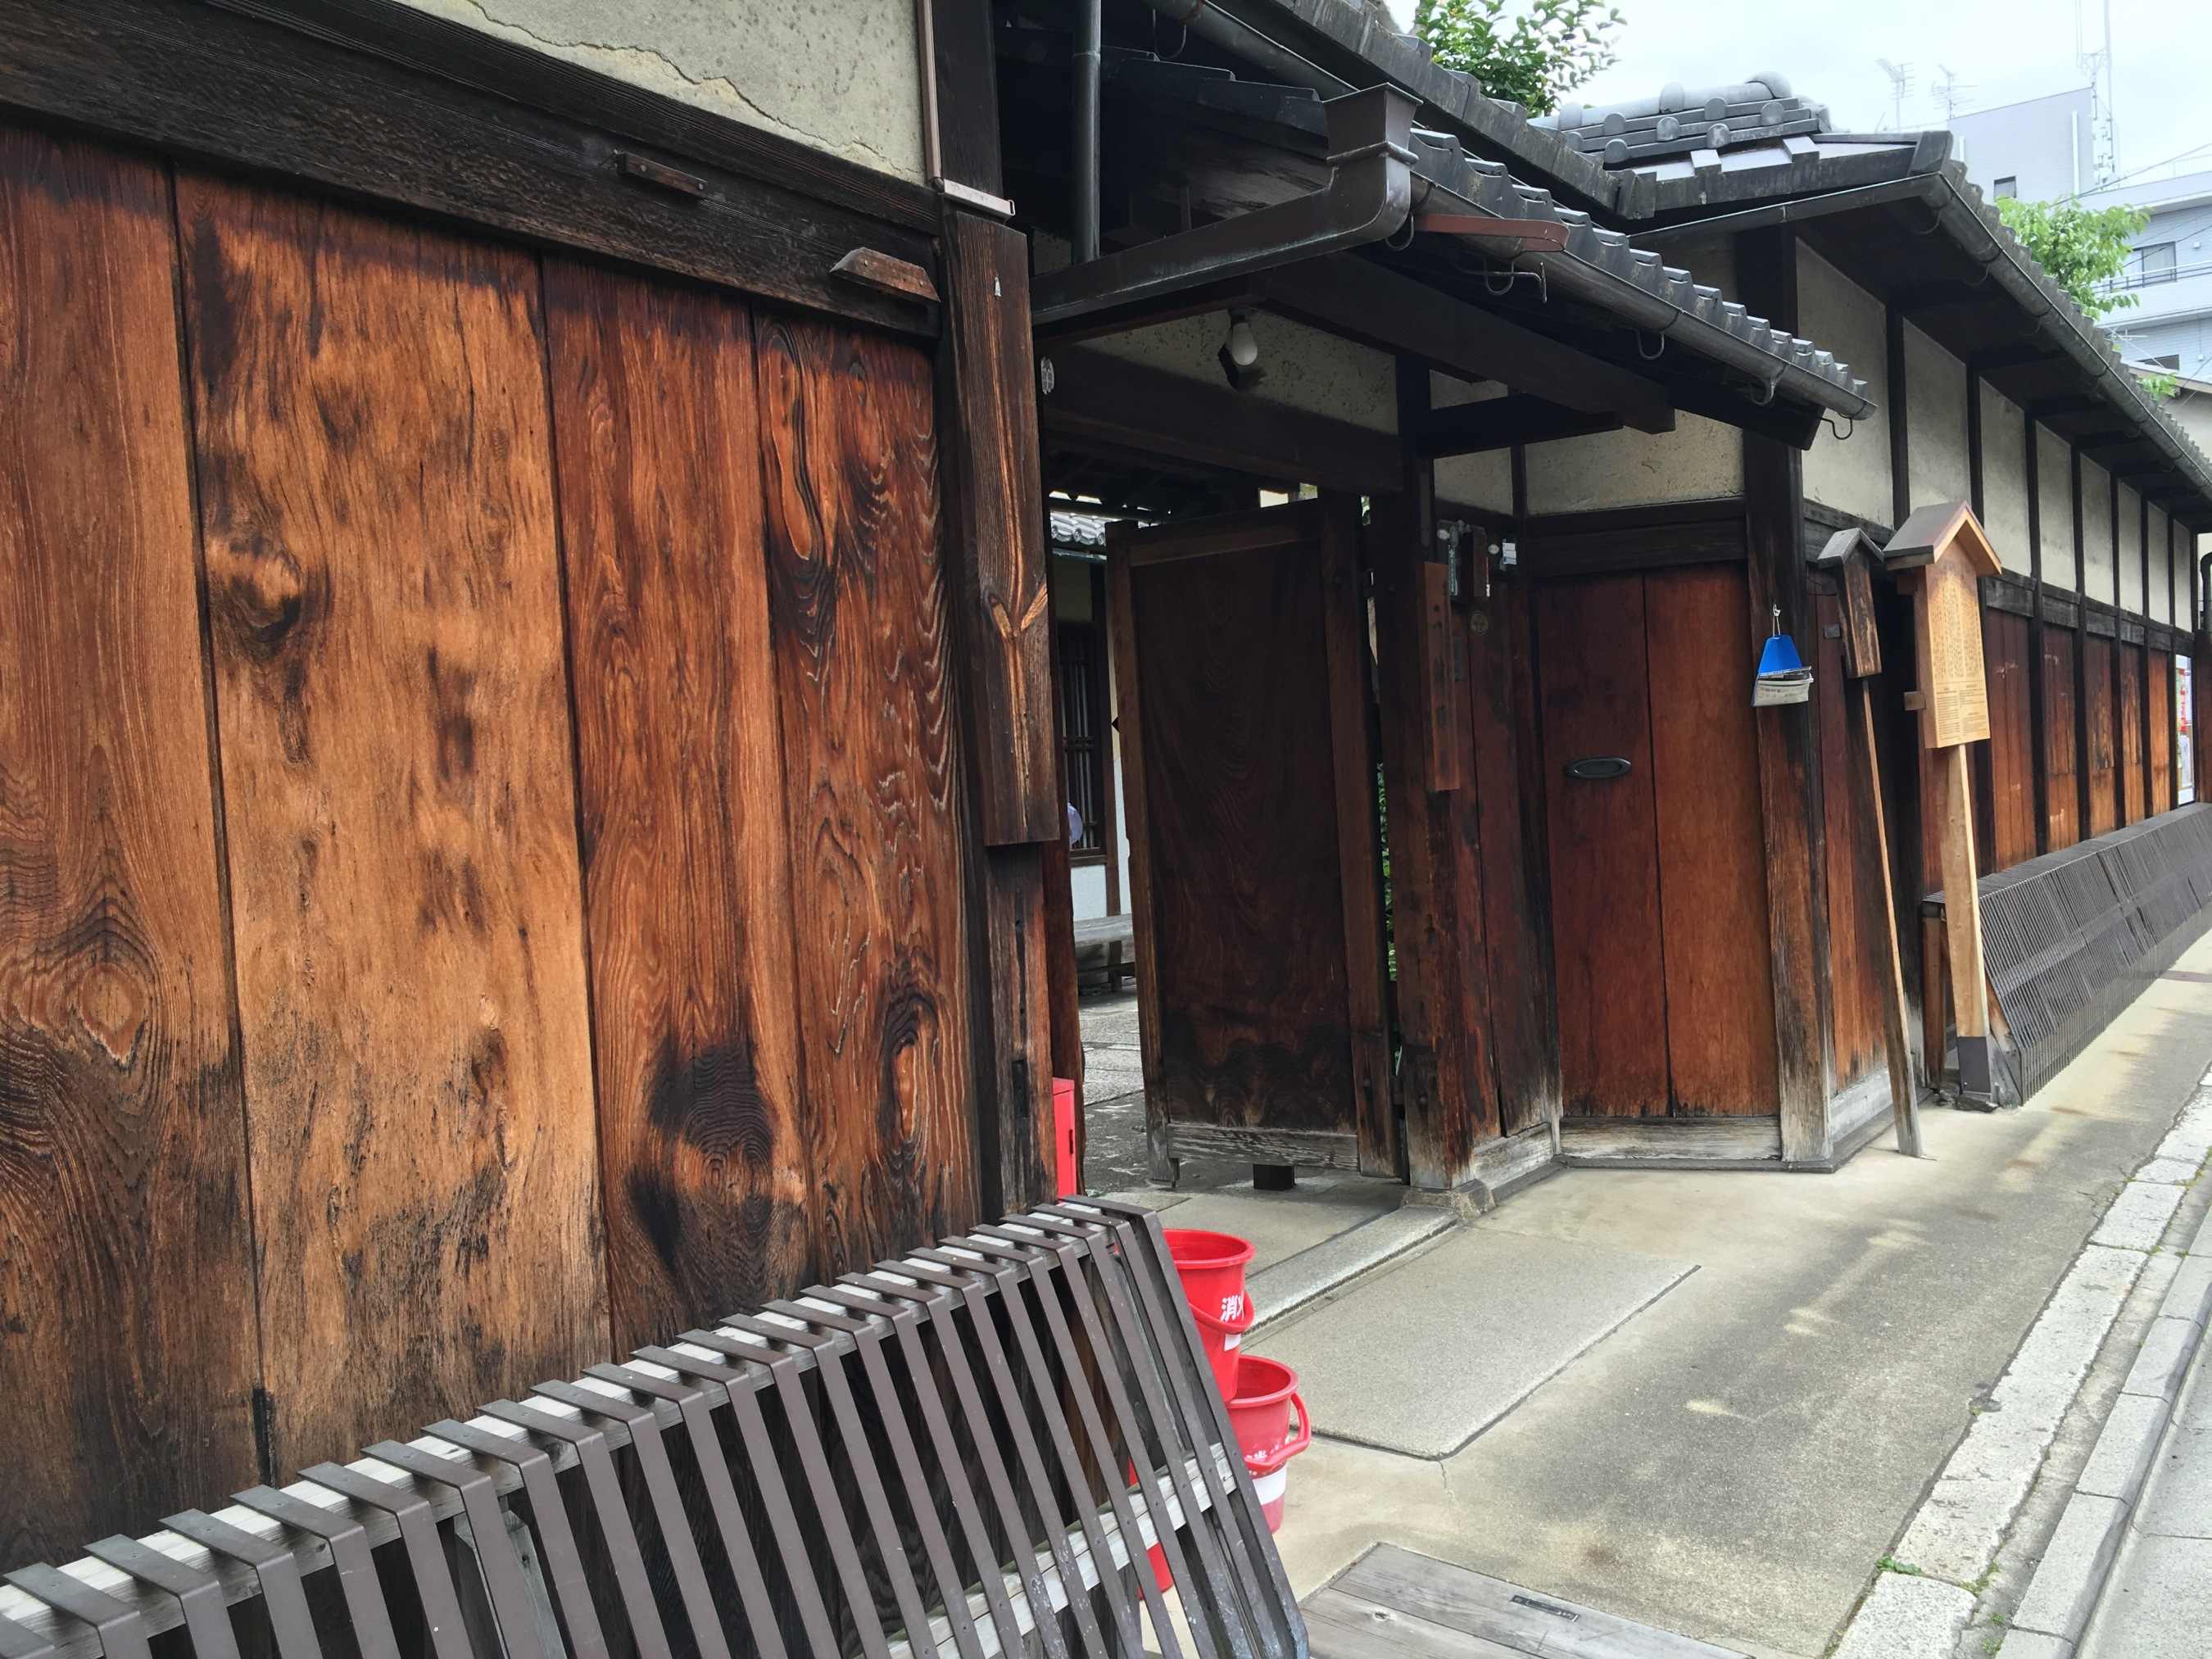 The threat of fire in the cities of Japan led to some innovative fire prevention measures. Nino Jinya, a illustrates several of them. These include hanging wet mats from hooks along the eaves of the house which as a metal edge around the roofline. In that way there is no wood or thatch exposed to fire.